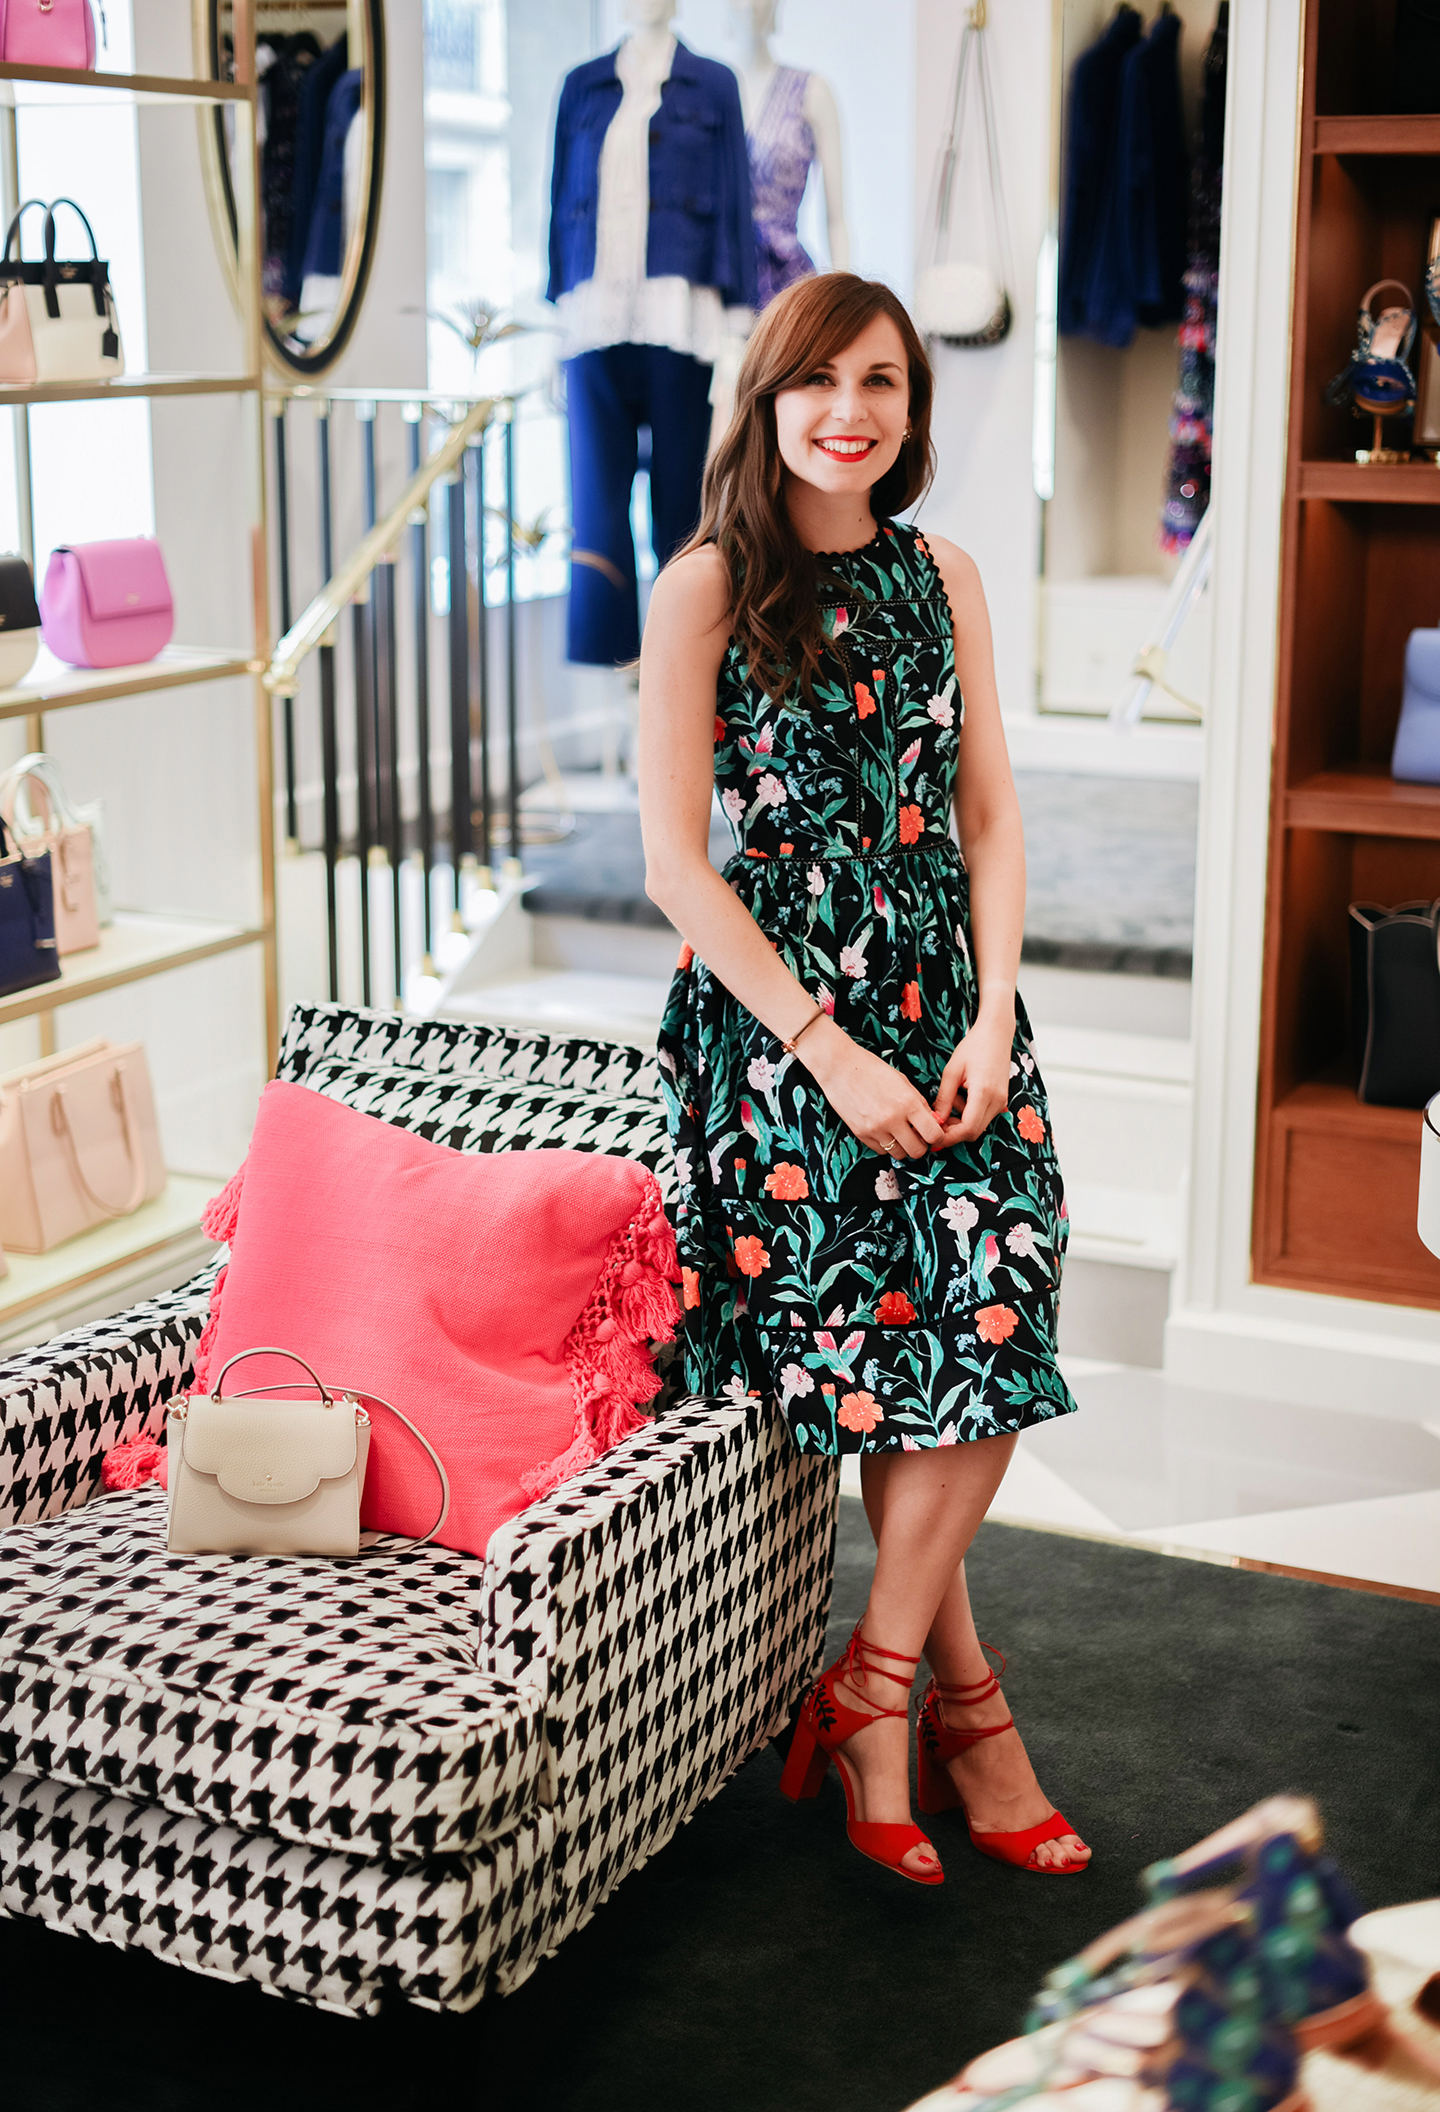 Blog-Mode-And-The-City-Lifestyle-Kate-Spade-Paris-418-rue-saint-honore-15